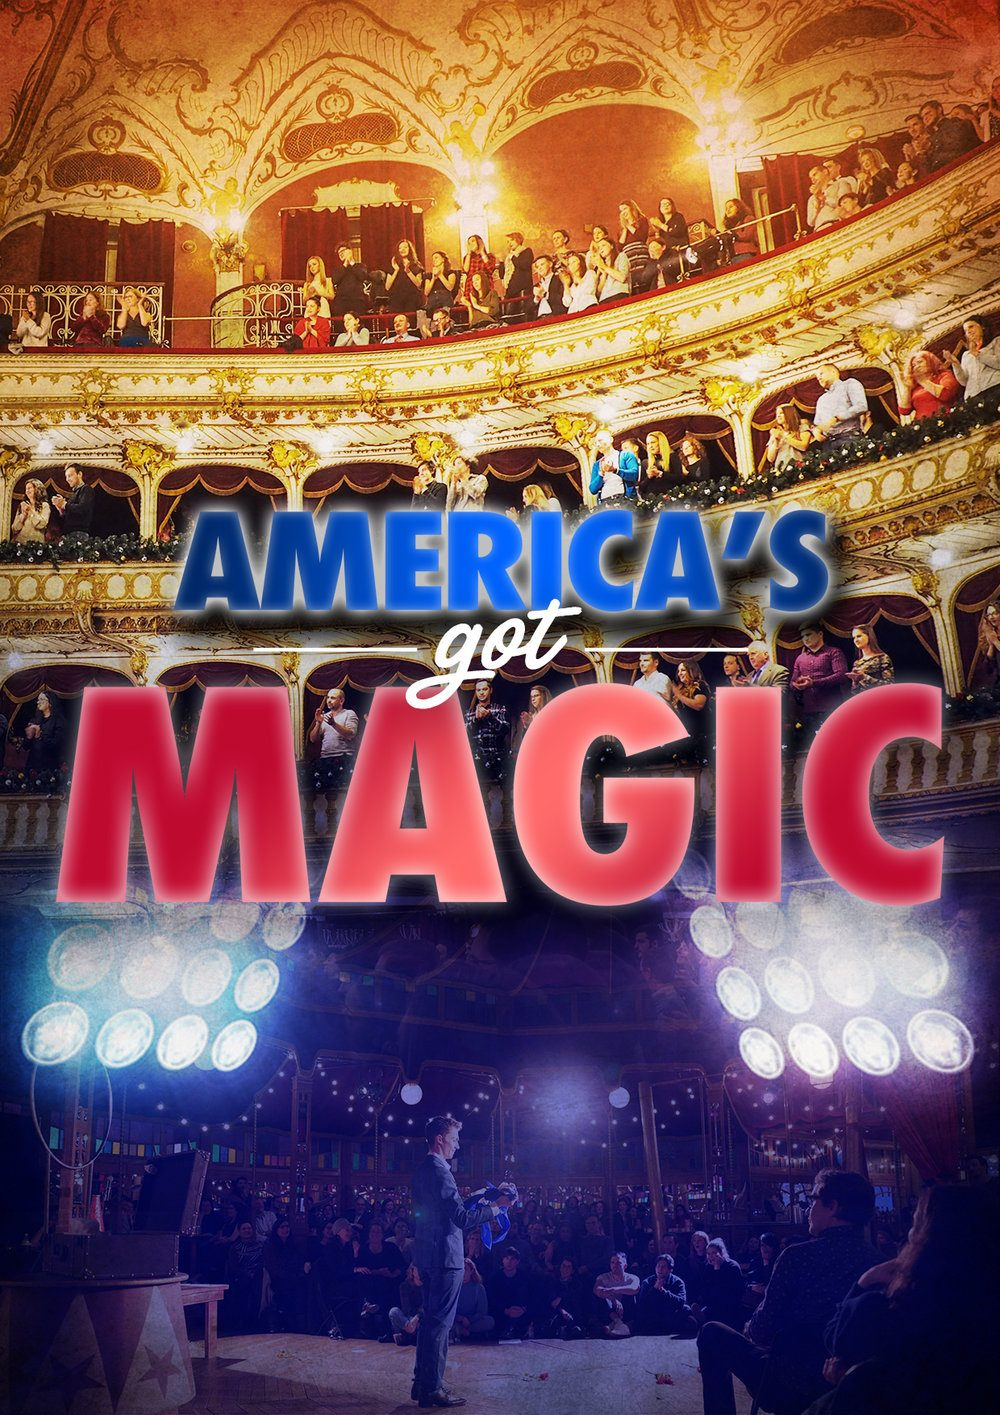 america's got magic